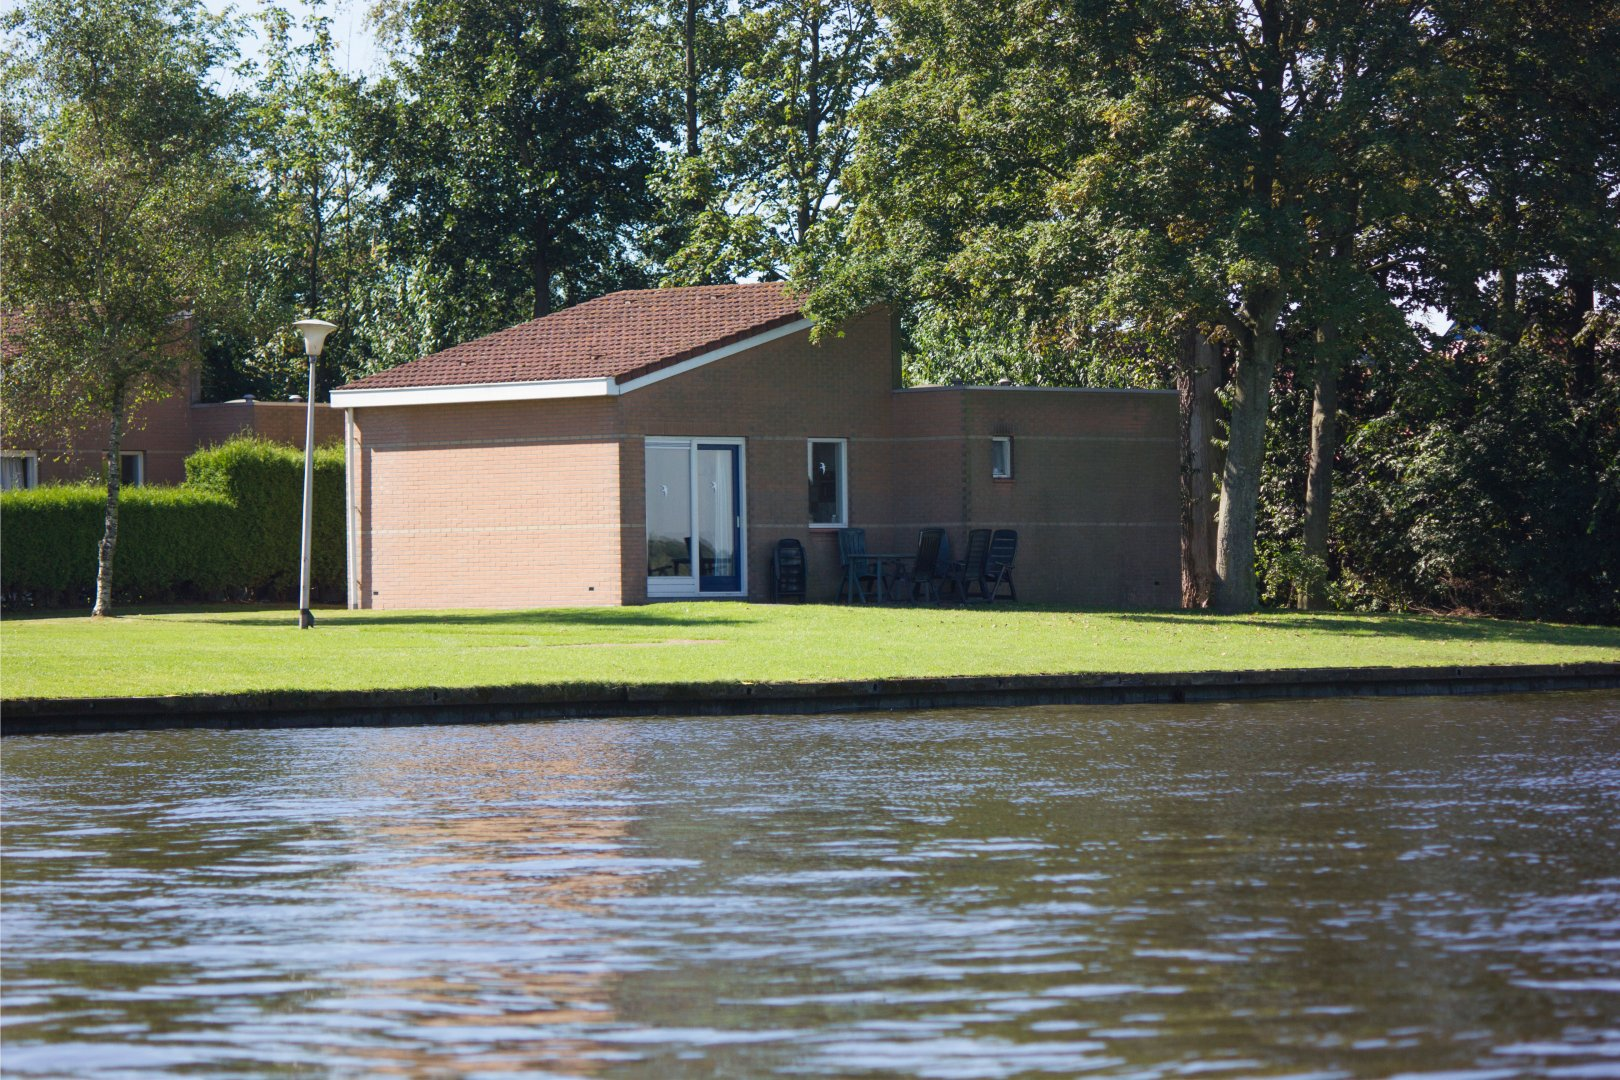 Bettdecken Holland Bungalow Friesland Friesland Bungalowpark Bergumermeer